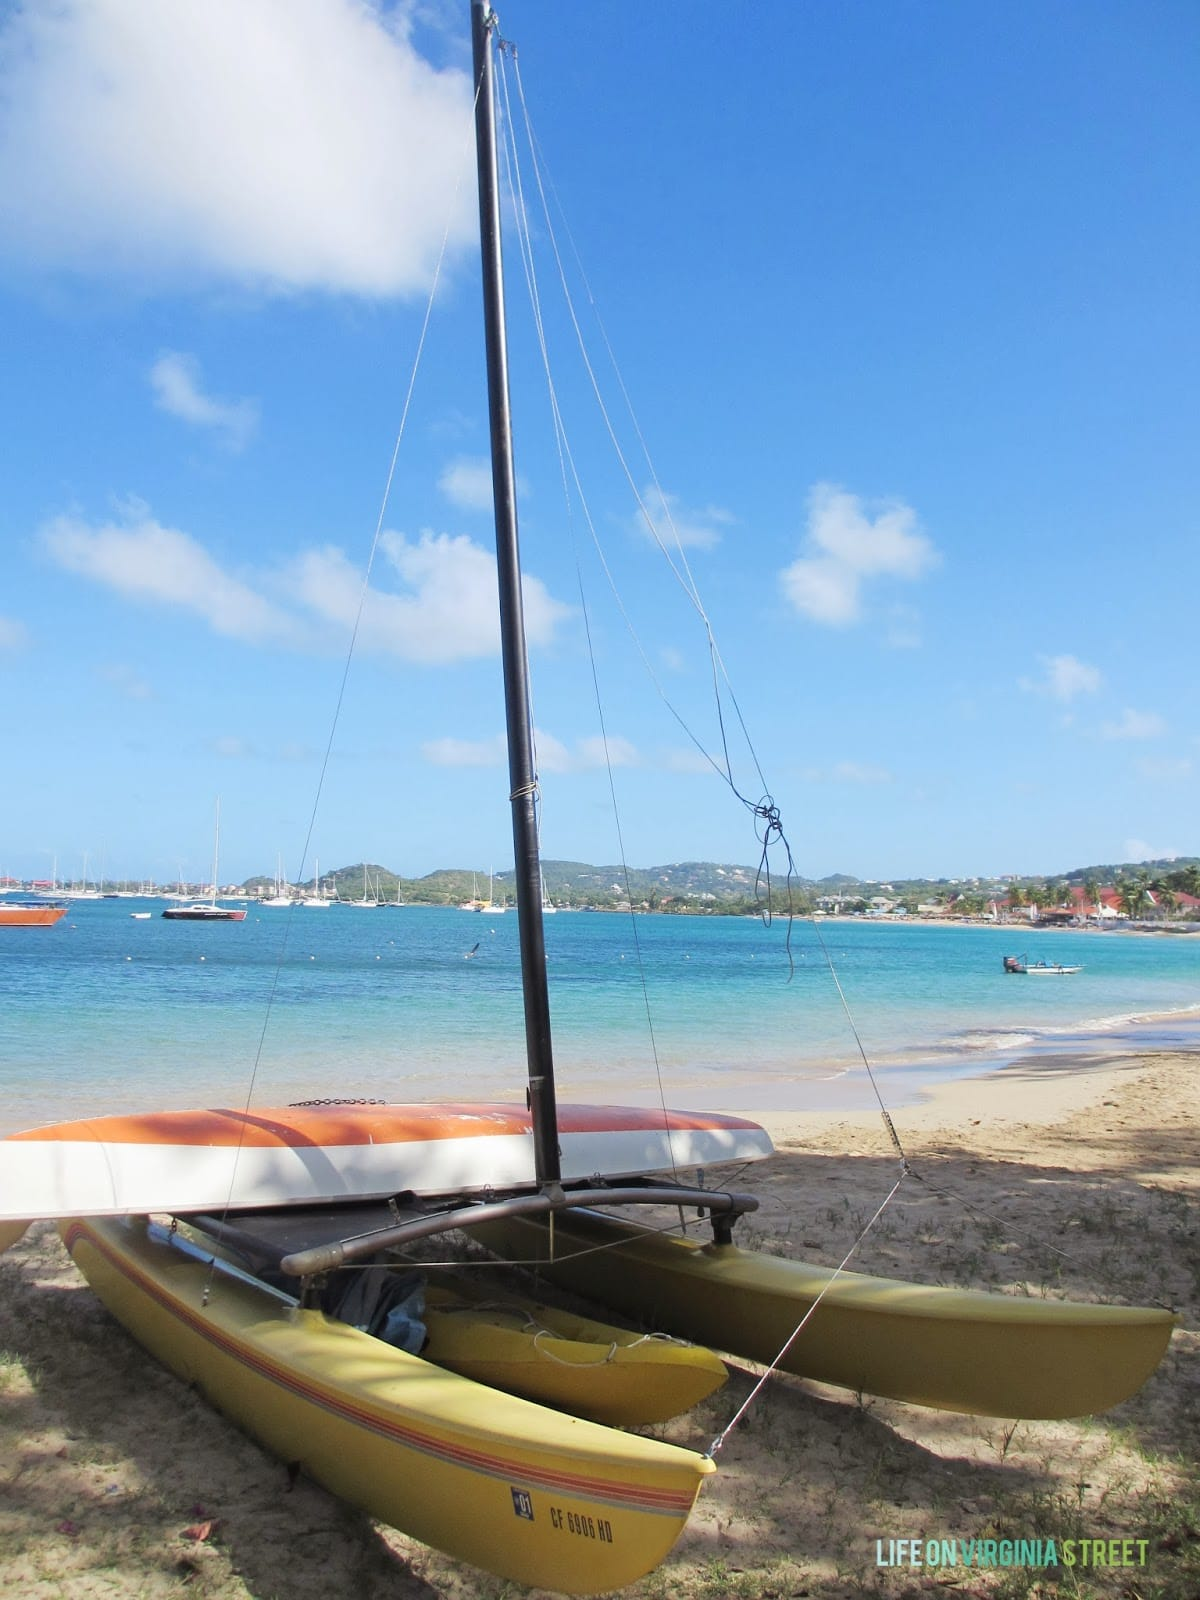 A catamaran on the beach in the Caribbean.